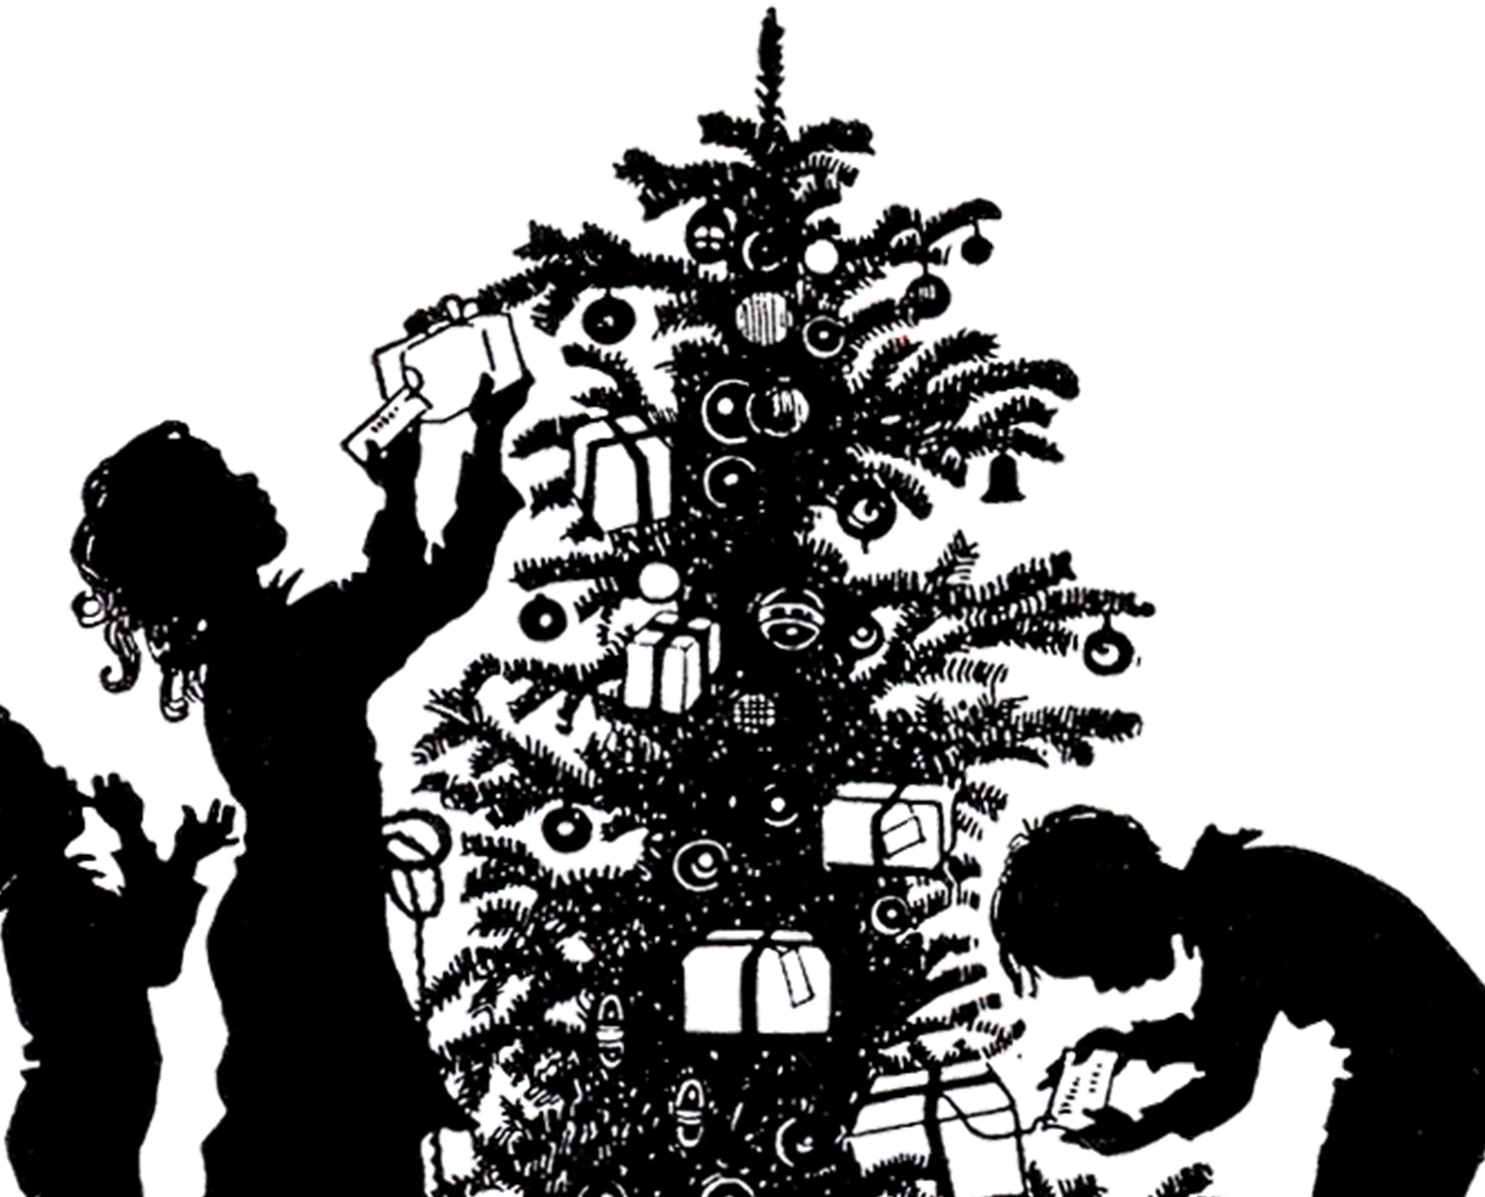 Christmas Morning Silhouette Image! - The Graphics Fairy